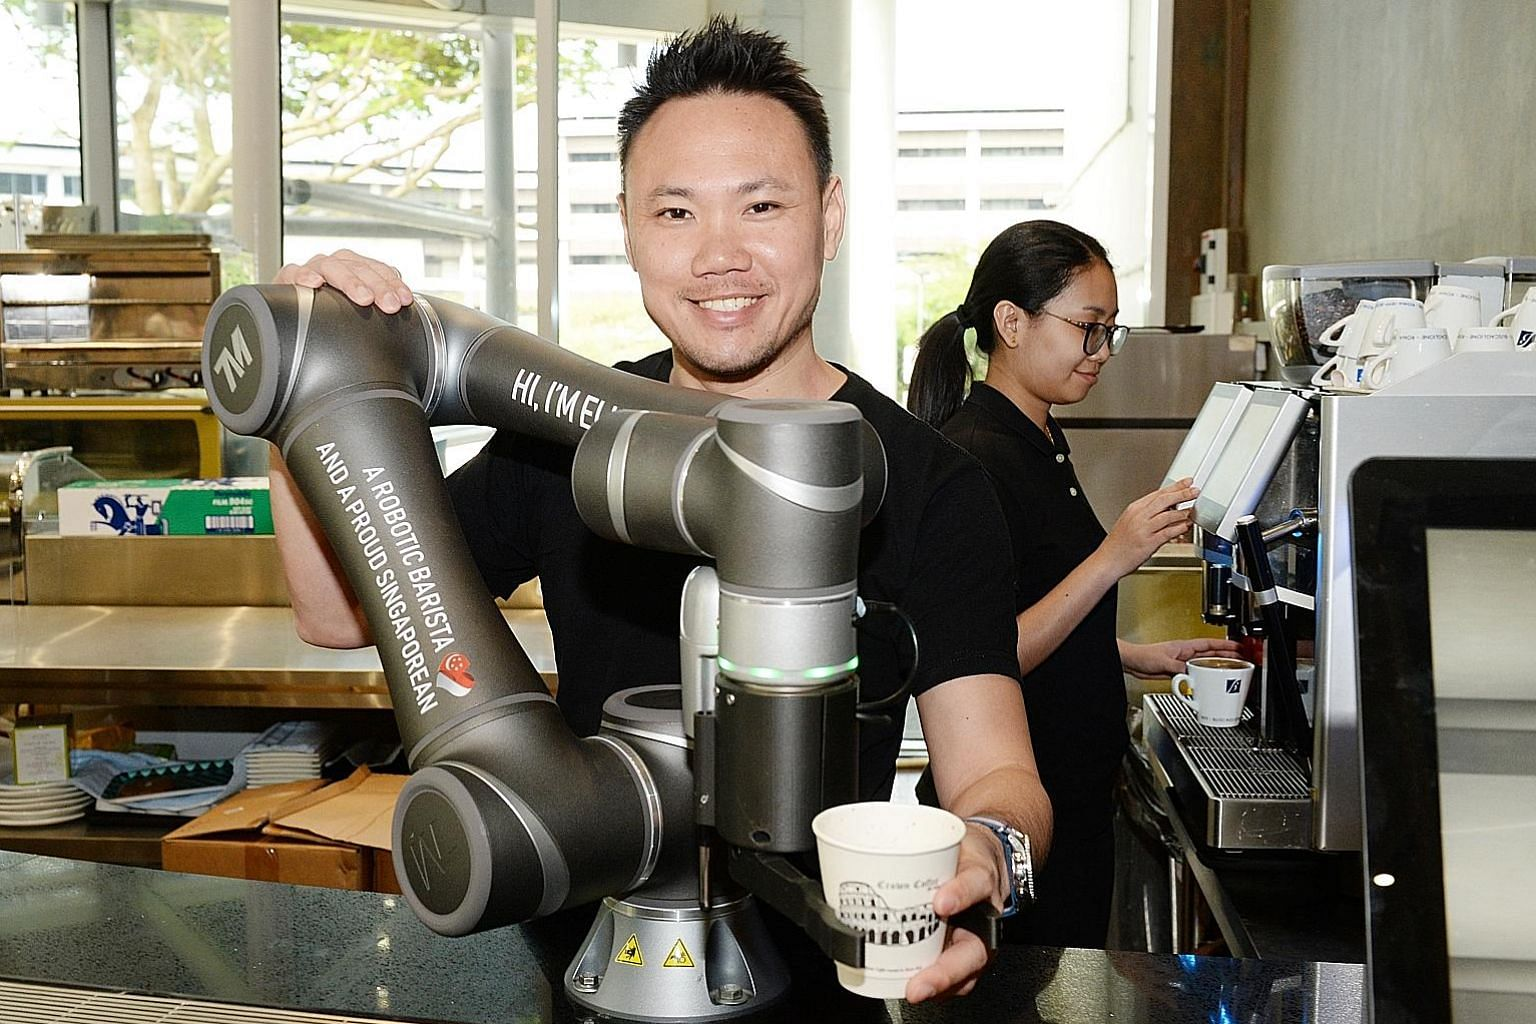 Local coffee chain Crown Coffee launched the first robot barista in Singapore in 2017. The robot uses facial recognition to recognise repeat customers and tracks their consumption patterns, but the chain's founder Keith Tan (left) says that the firm